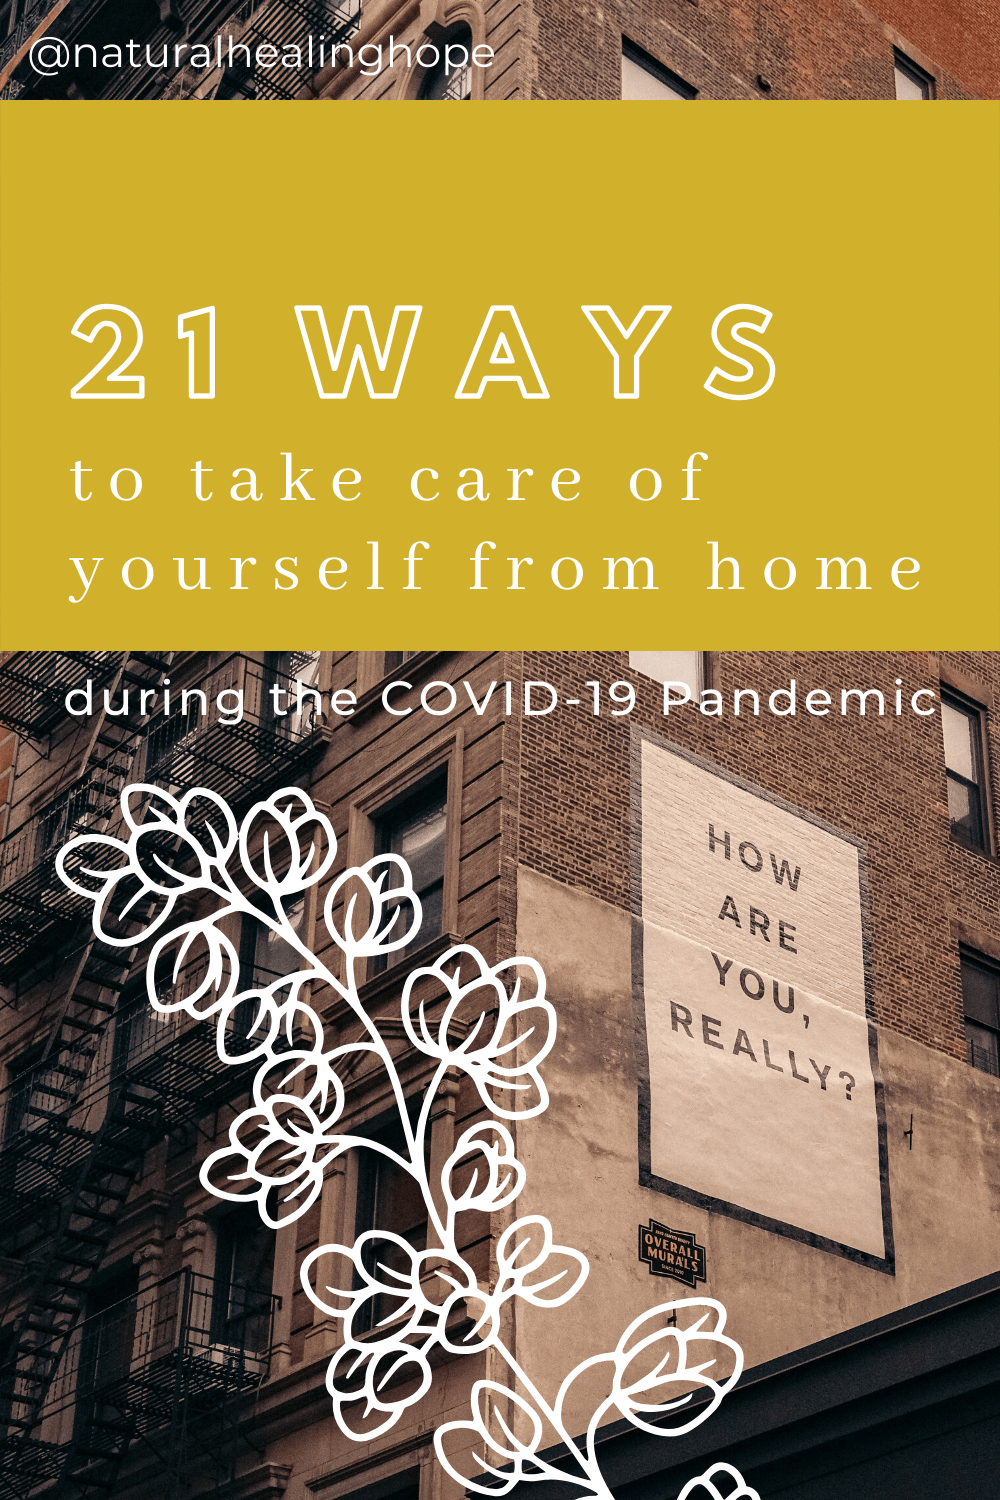 "Building with sign on the side that says ""How are you really?"" Text overlay says ""21 Ways to take care of yourself from home during the COVID-19 Pandemic"""